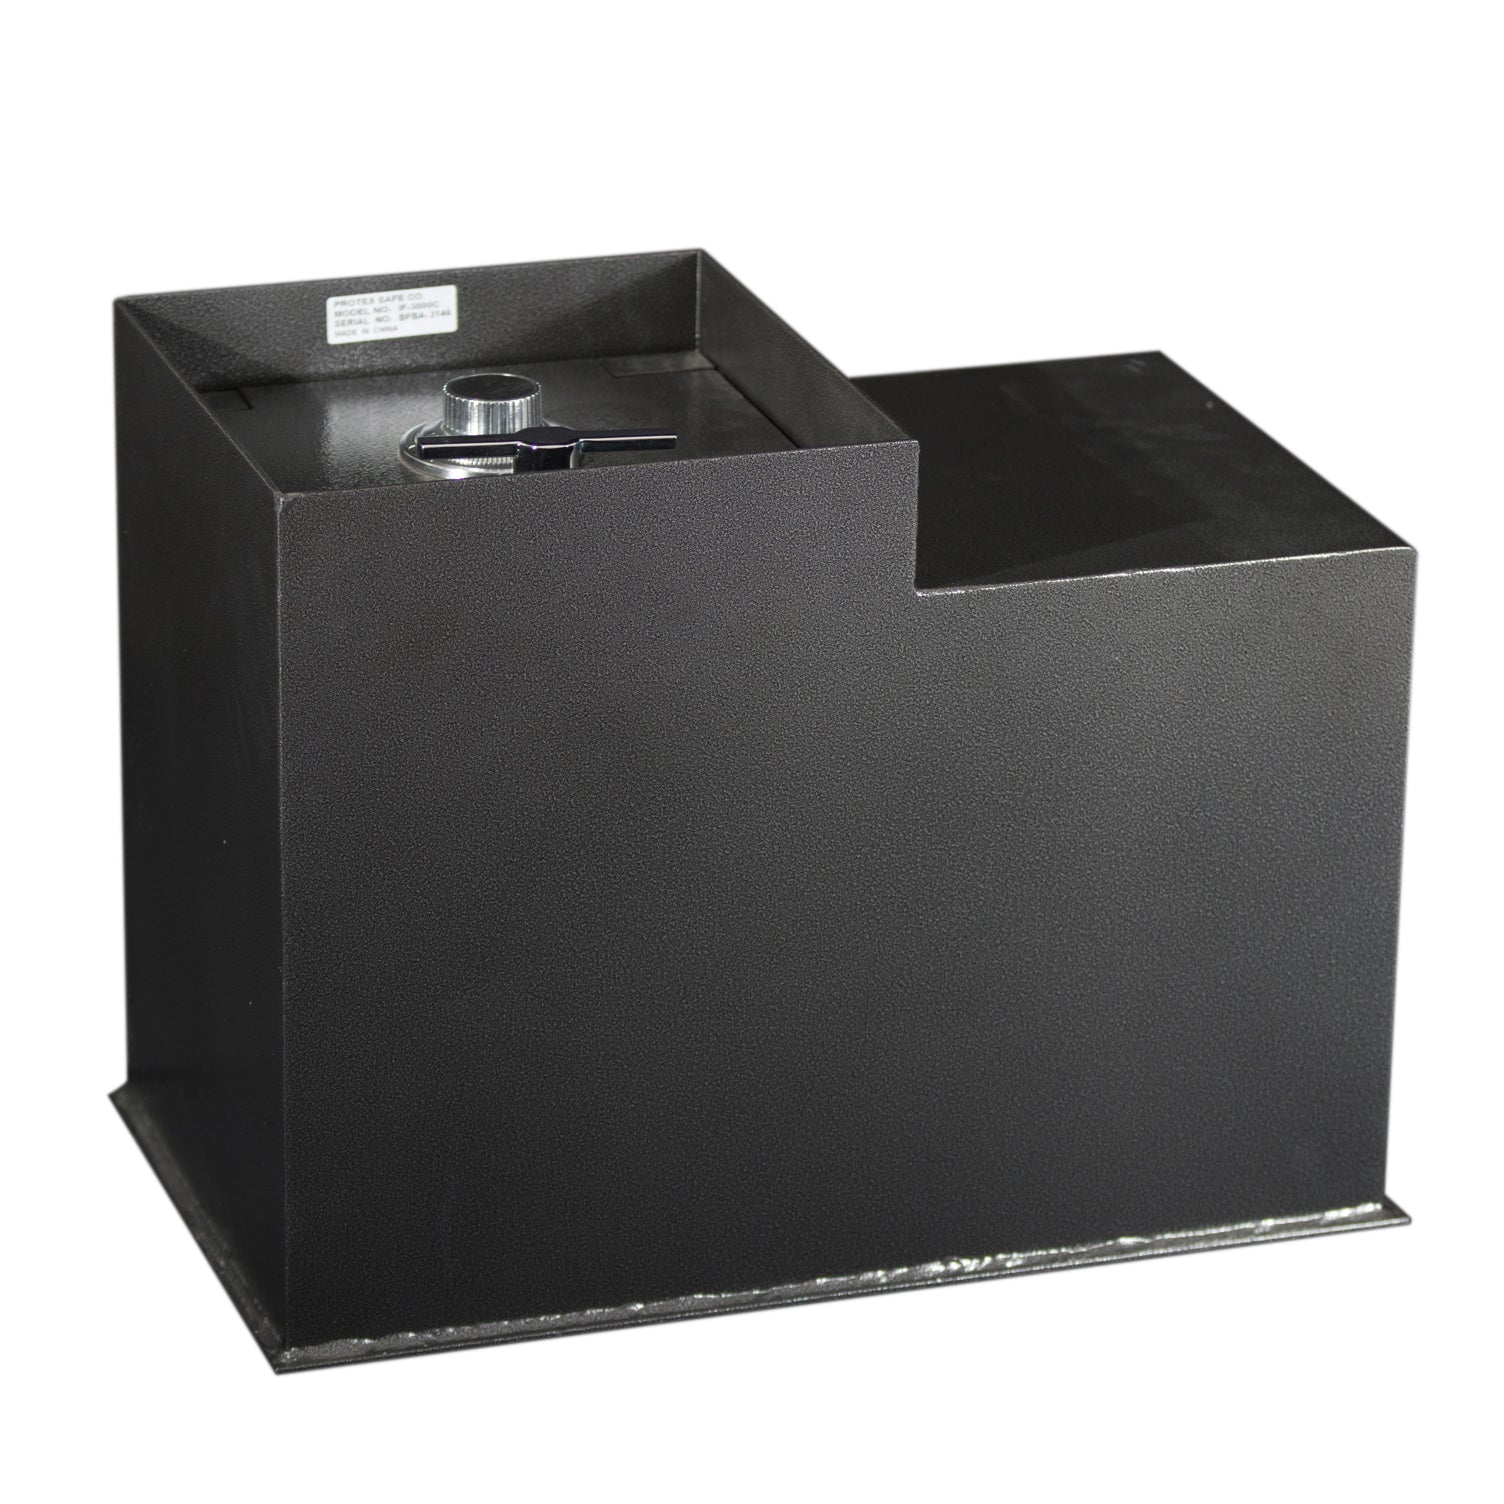 Protex Safe IF-3000C Extra Large Floor Safe